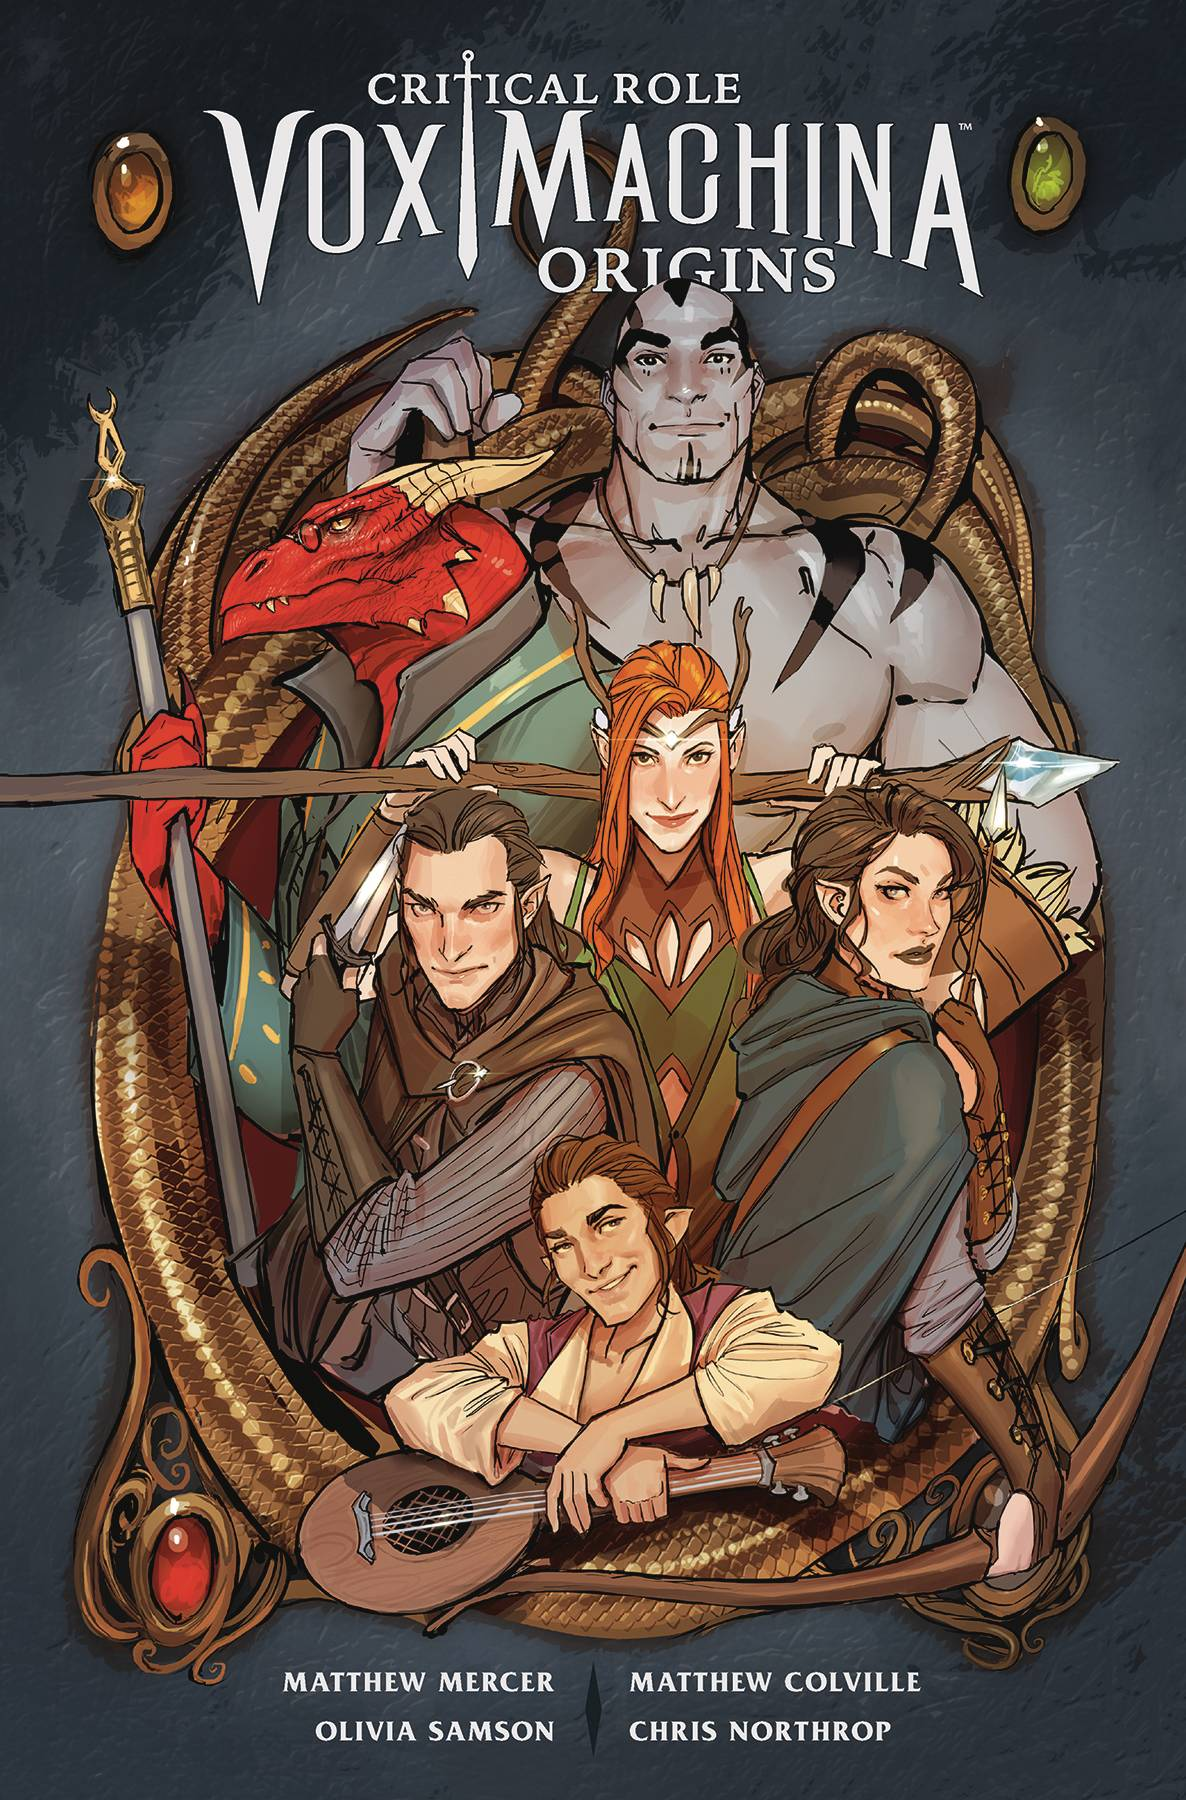 CRITICAL ROLE TP VOL 01 VOX MACHINA ORIGINS (JUN190303)